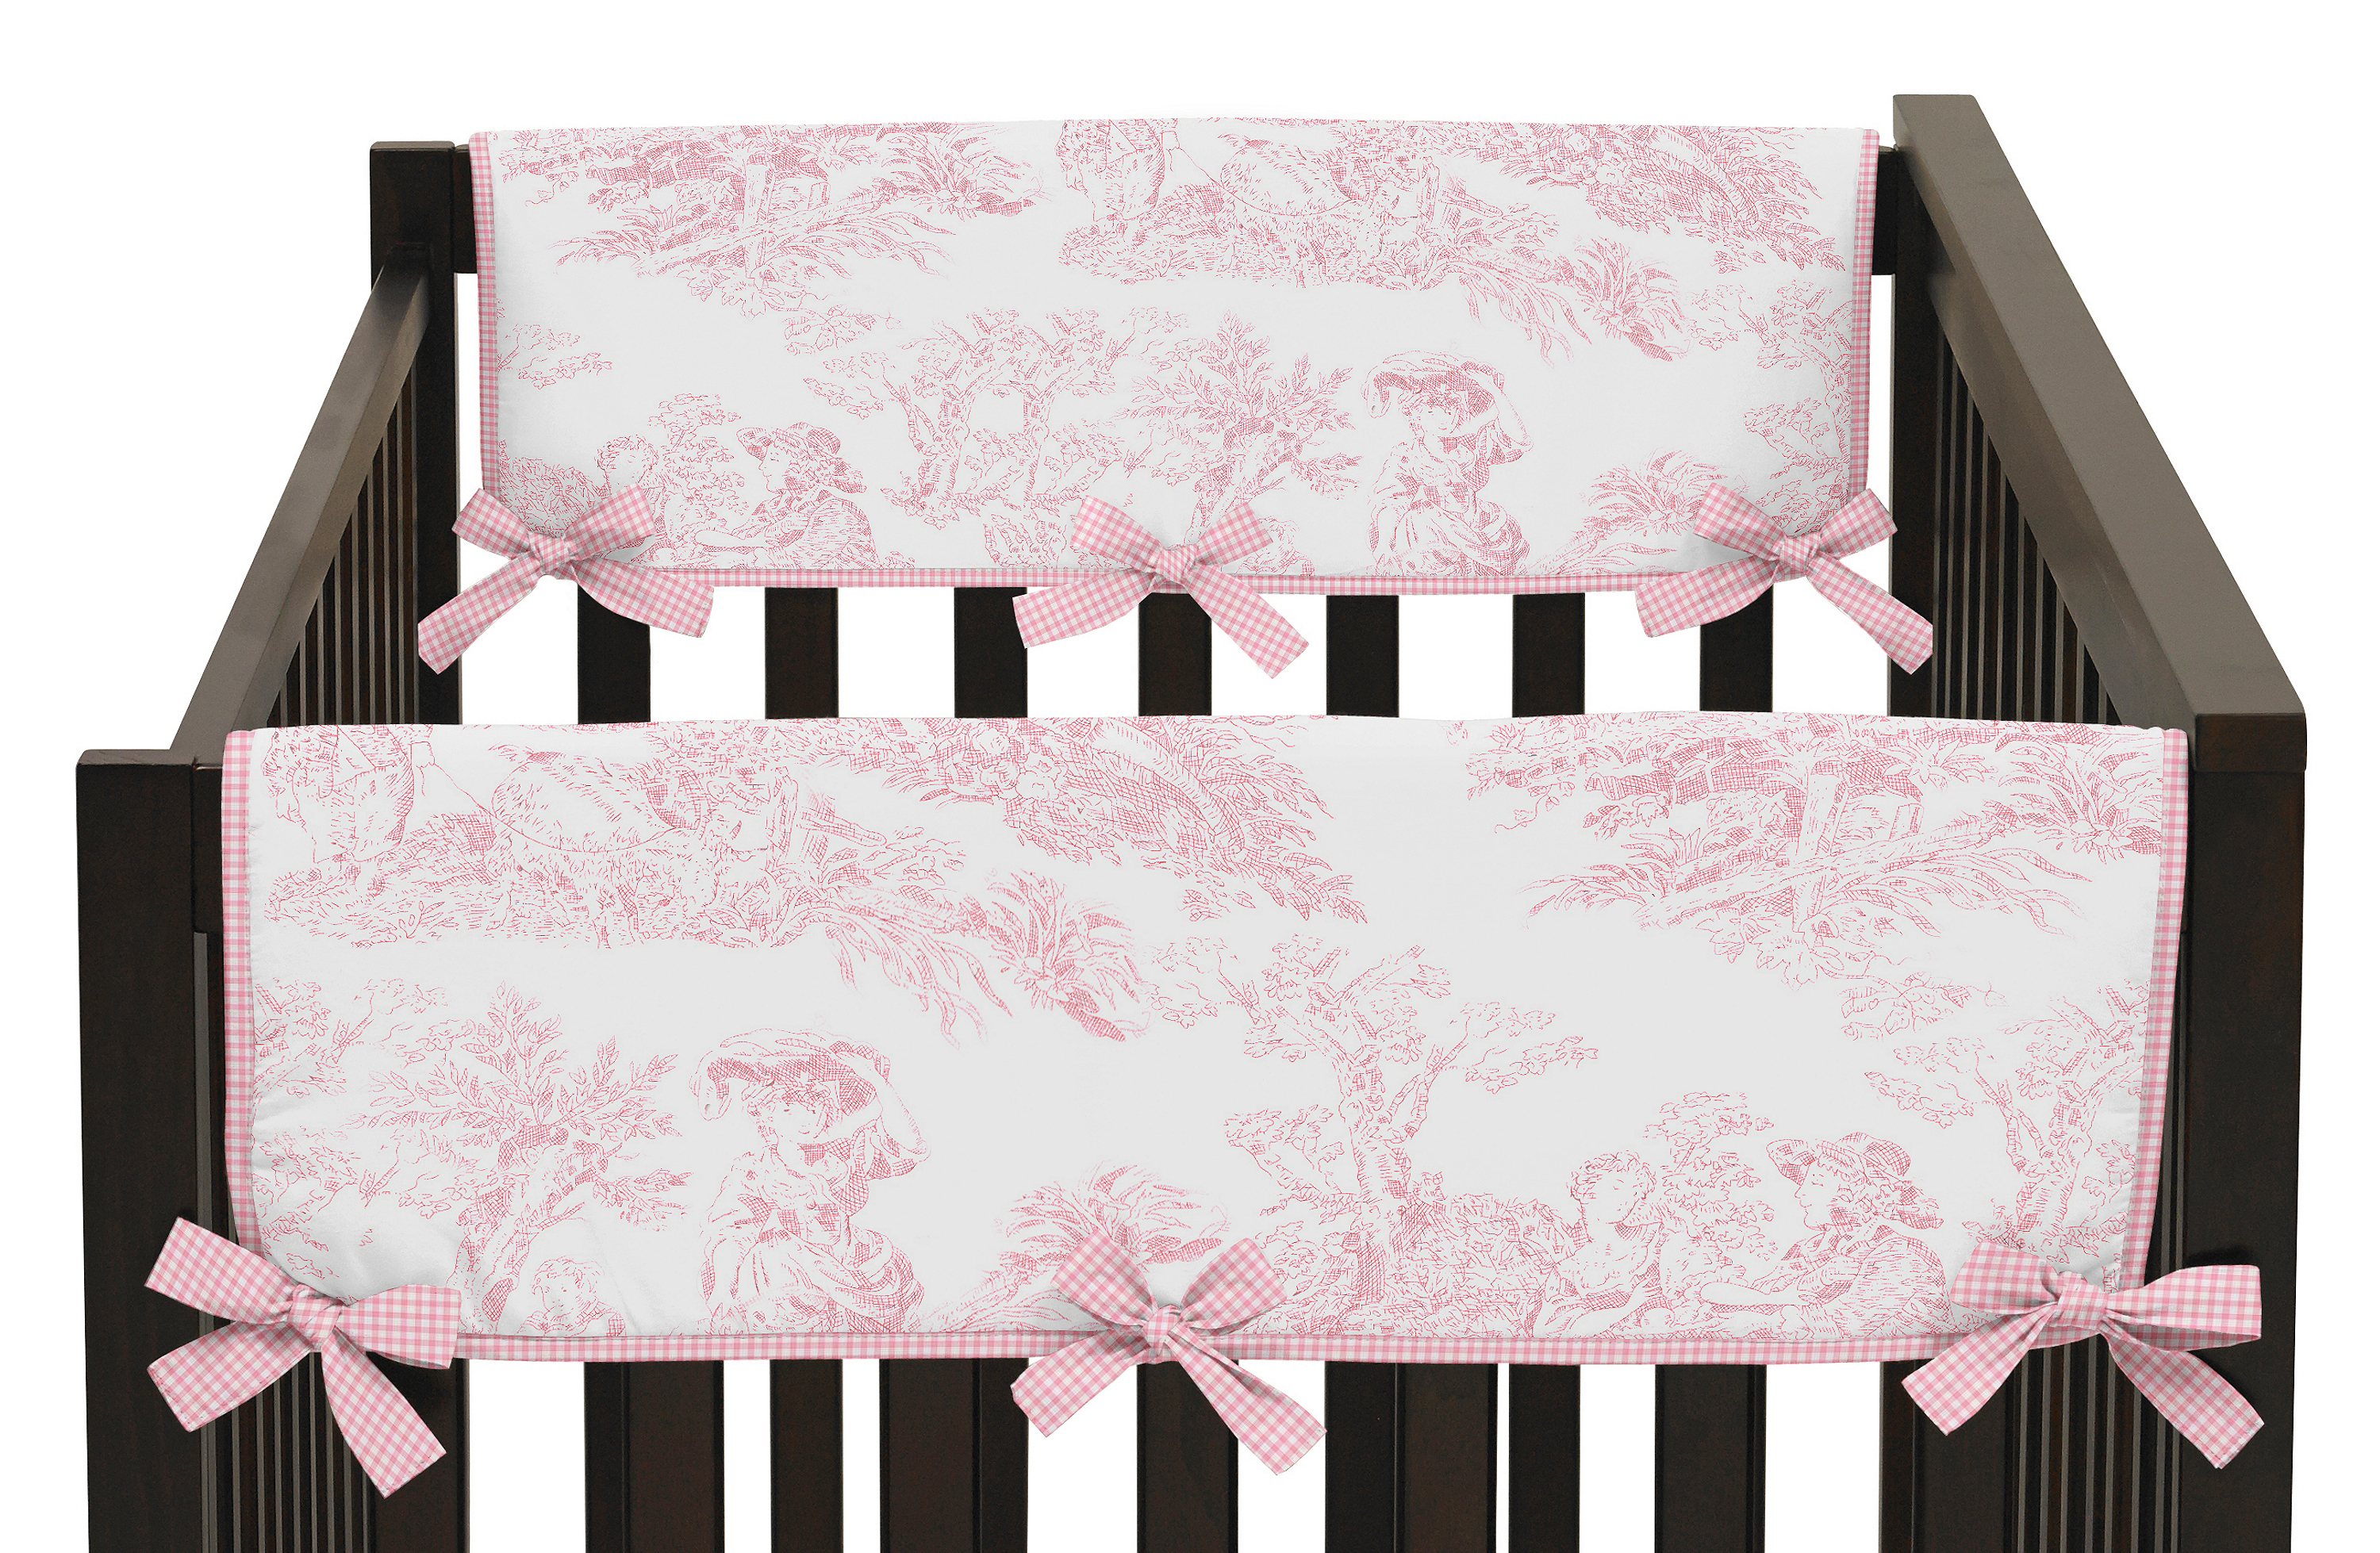 Sweet Jojo Designs Set of 2 Side Crib Rail Guard Covers for Pink French Toile Collection by Sweet Jojo Designs PartNumber: 04930836000P KsnValue: 8737586 MfgPartNumber: RSD-PToile